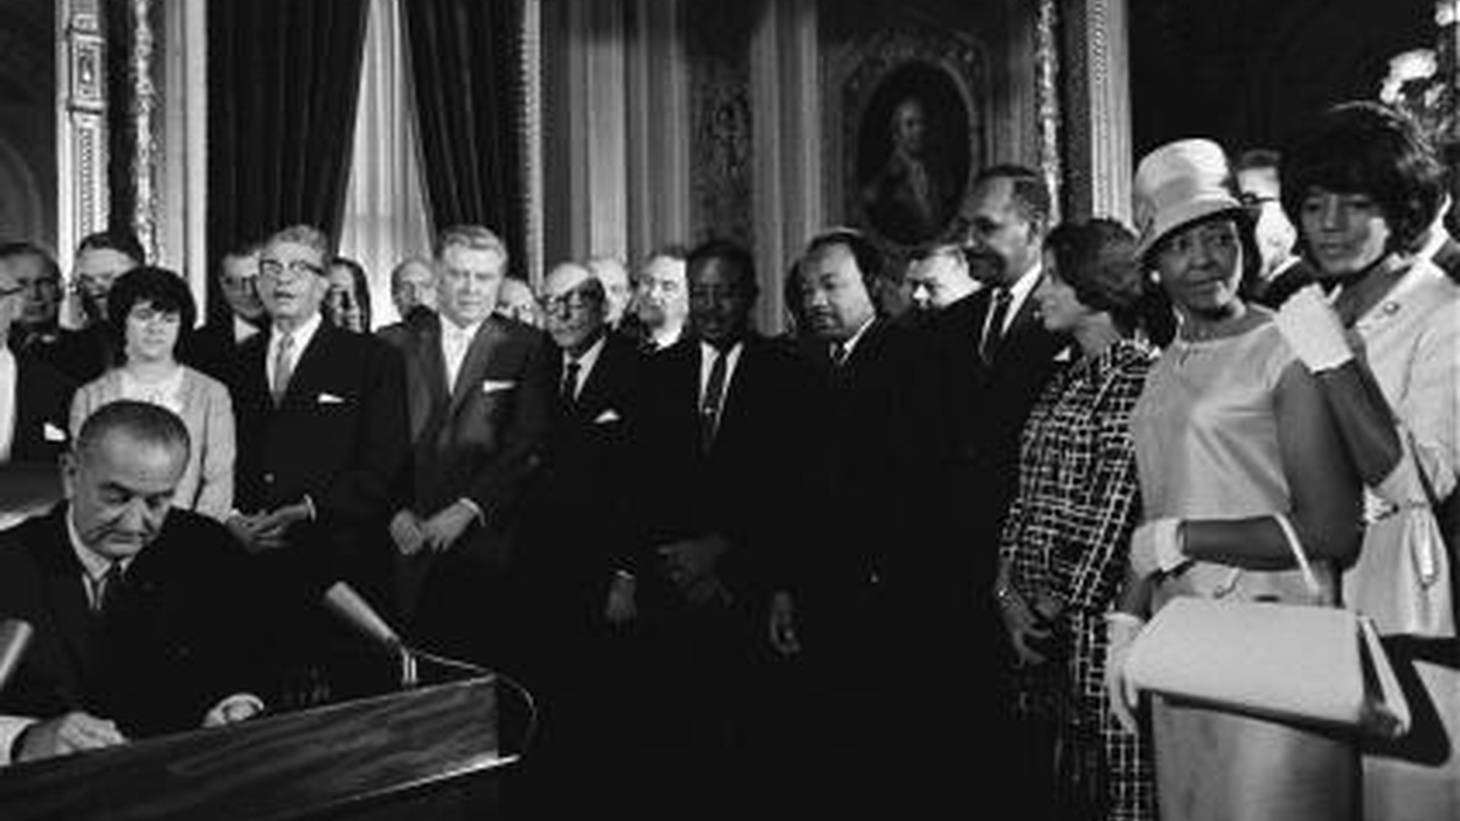 The Voting Rights Act of 1965 helped other minorities get the right to vote in states of the former Confederacy. But Alabama and other states insist that times have changed.